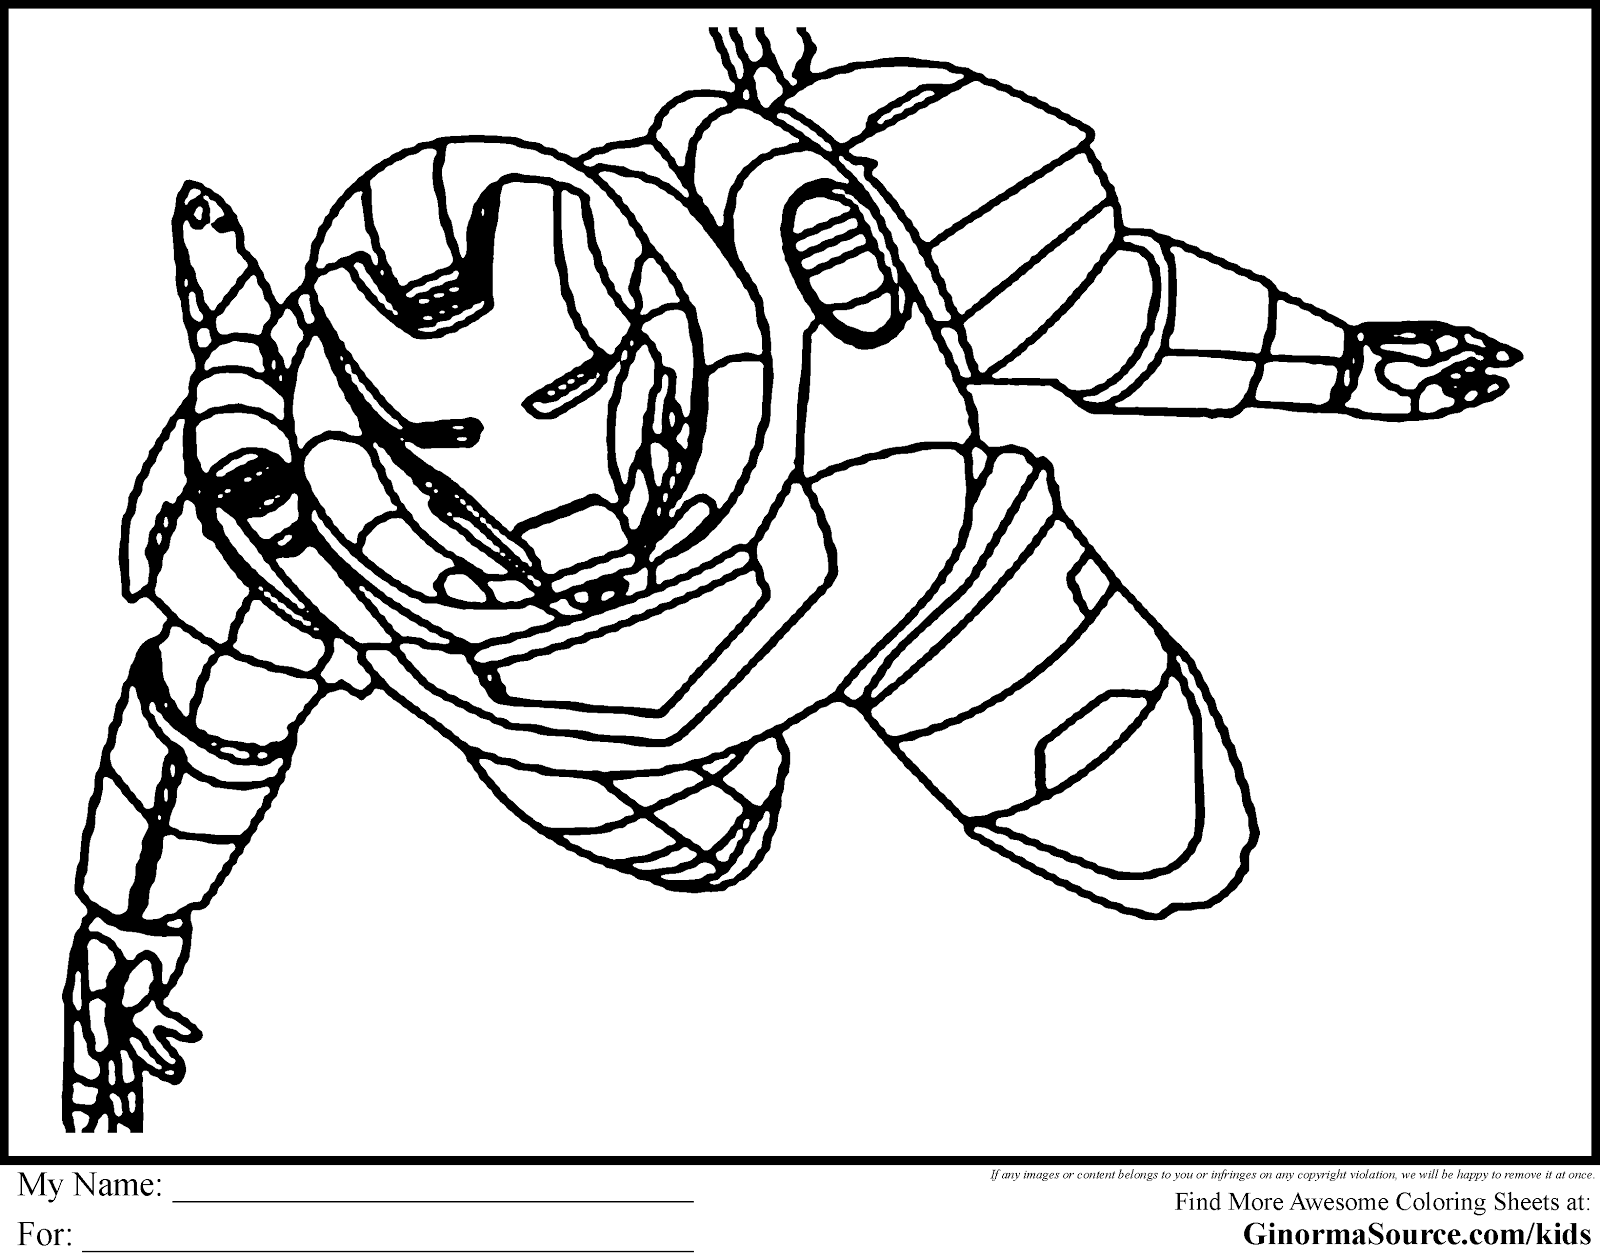 coloring printable superhero superheroes coloring pages download and print for free